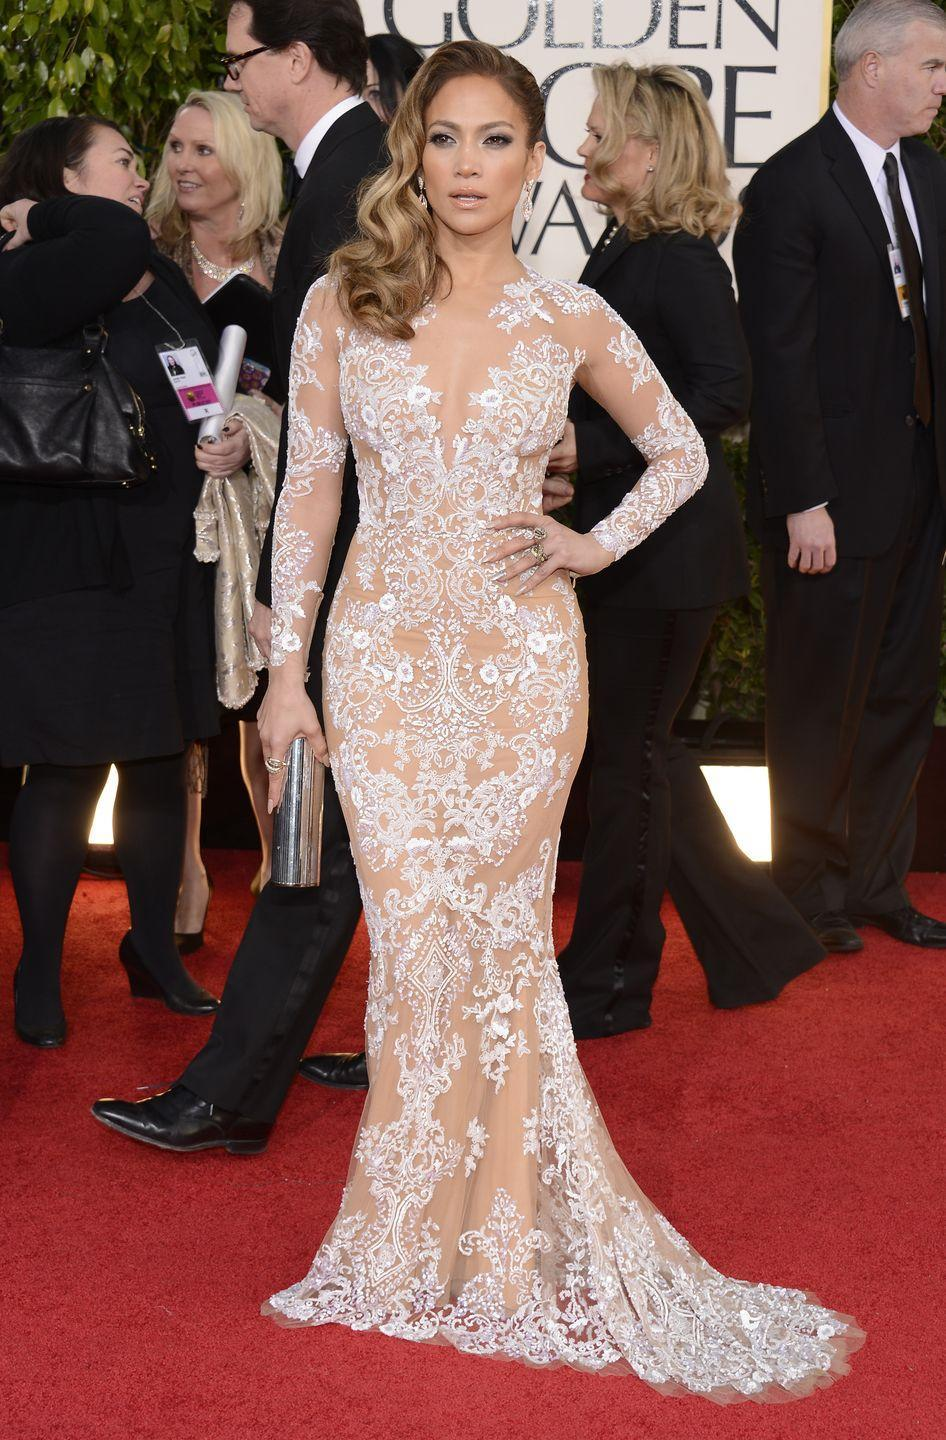 <p>J.Lo stuns in this figure-hugging lace Zuhair Murad dress at the Golden Globes. She pairs the look with a metallic clutch and completes it with a regal wavy 'do pulled over to one side.</p>